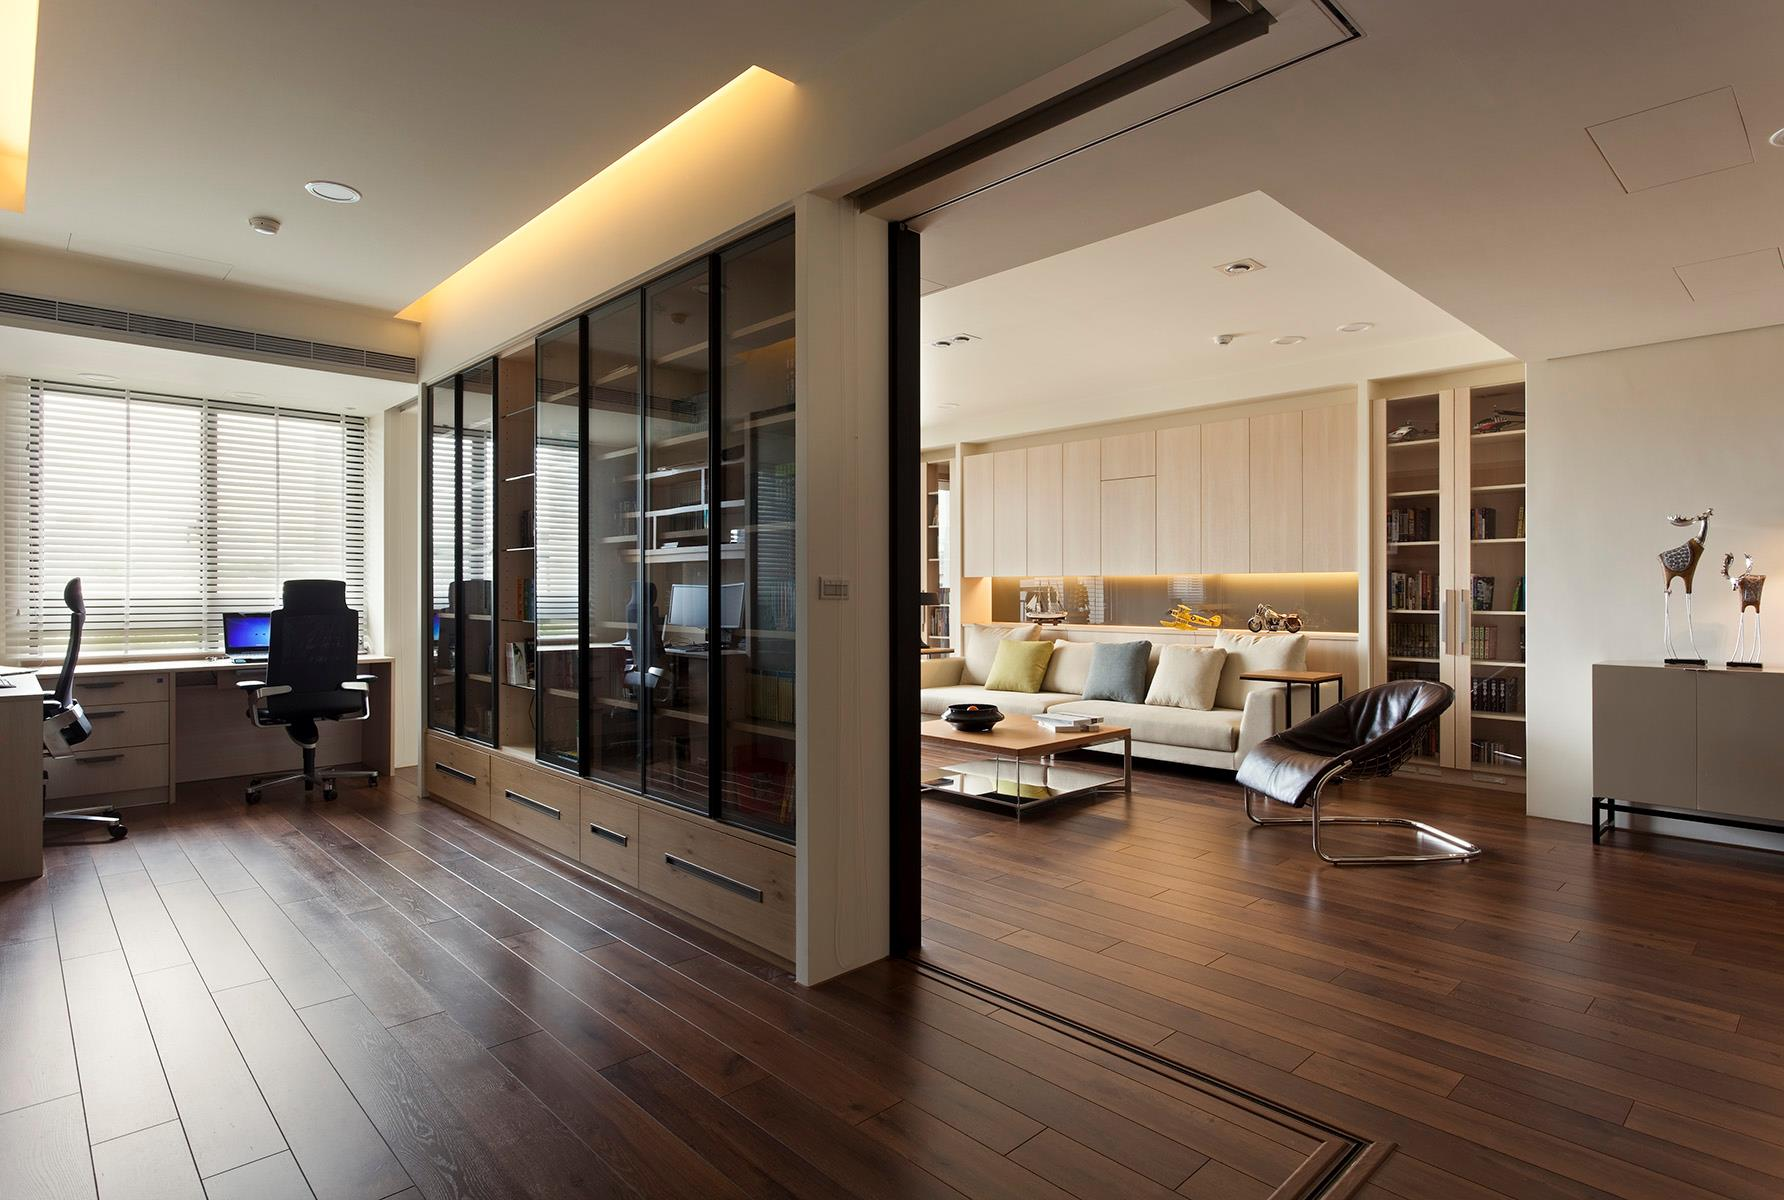 Retractable Wall Apartment With A Retractable Interior Wall